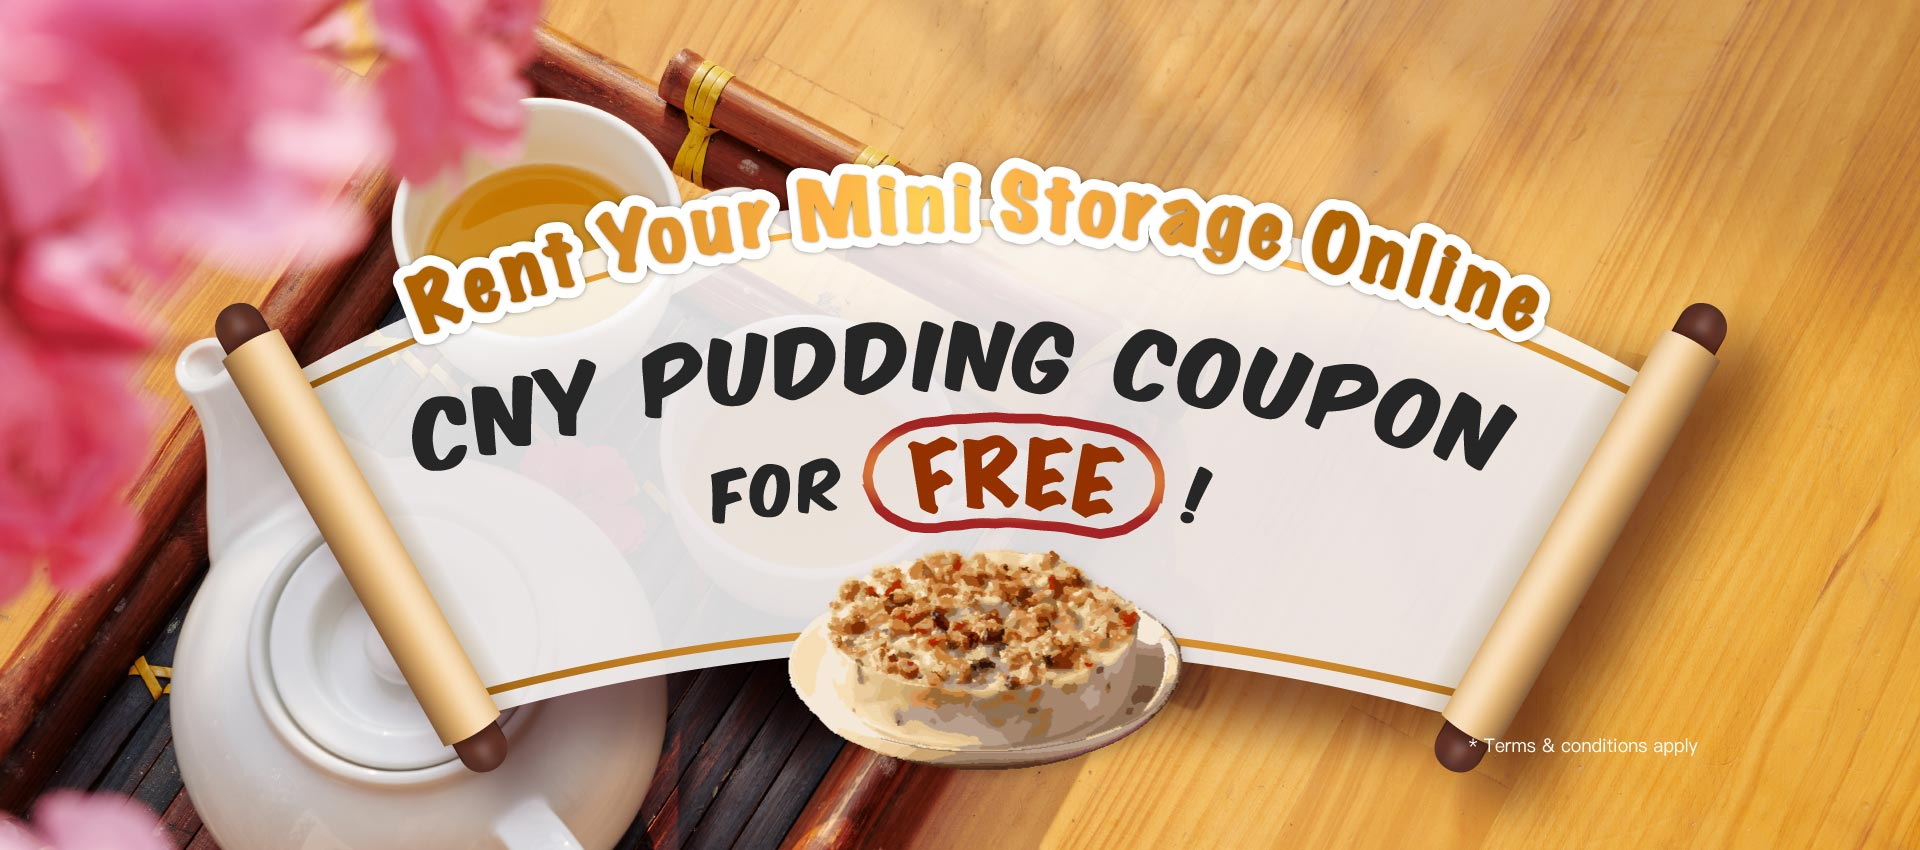 renting mini storages online may be gifted a CNY Pudding Coupon for FREE!